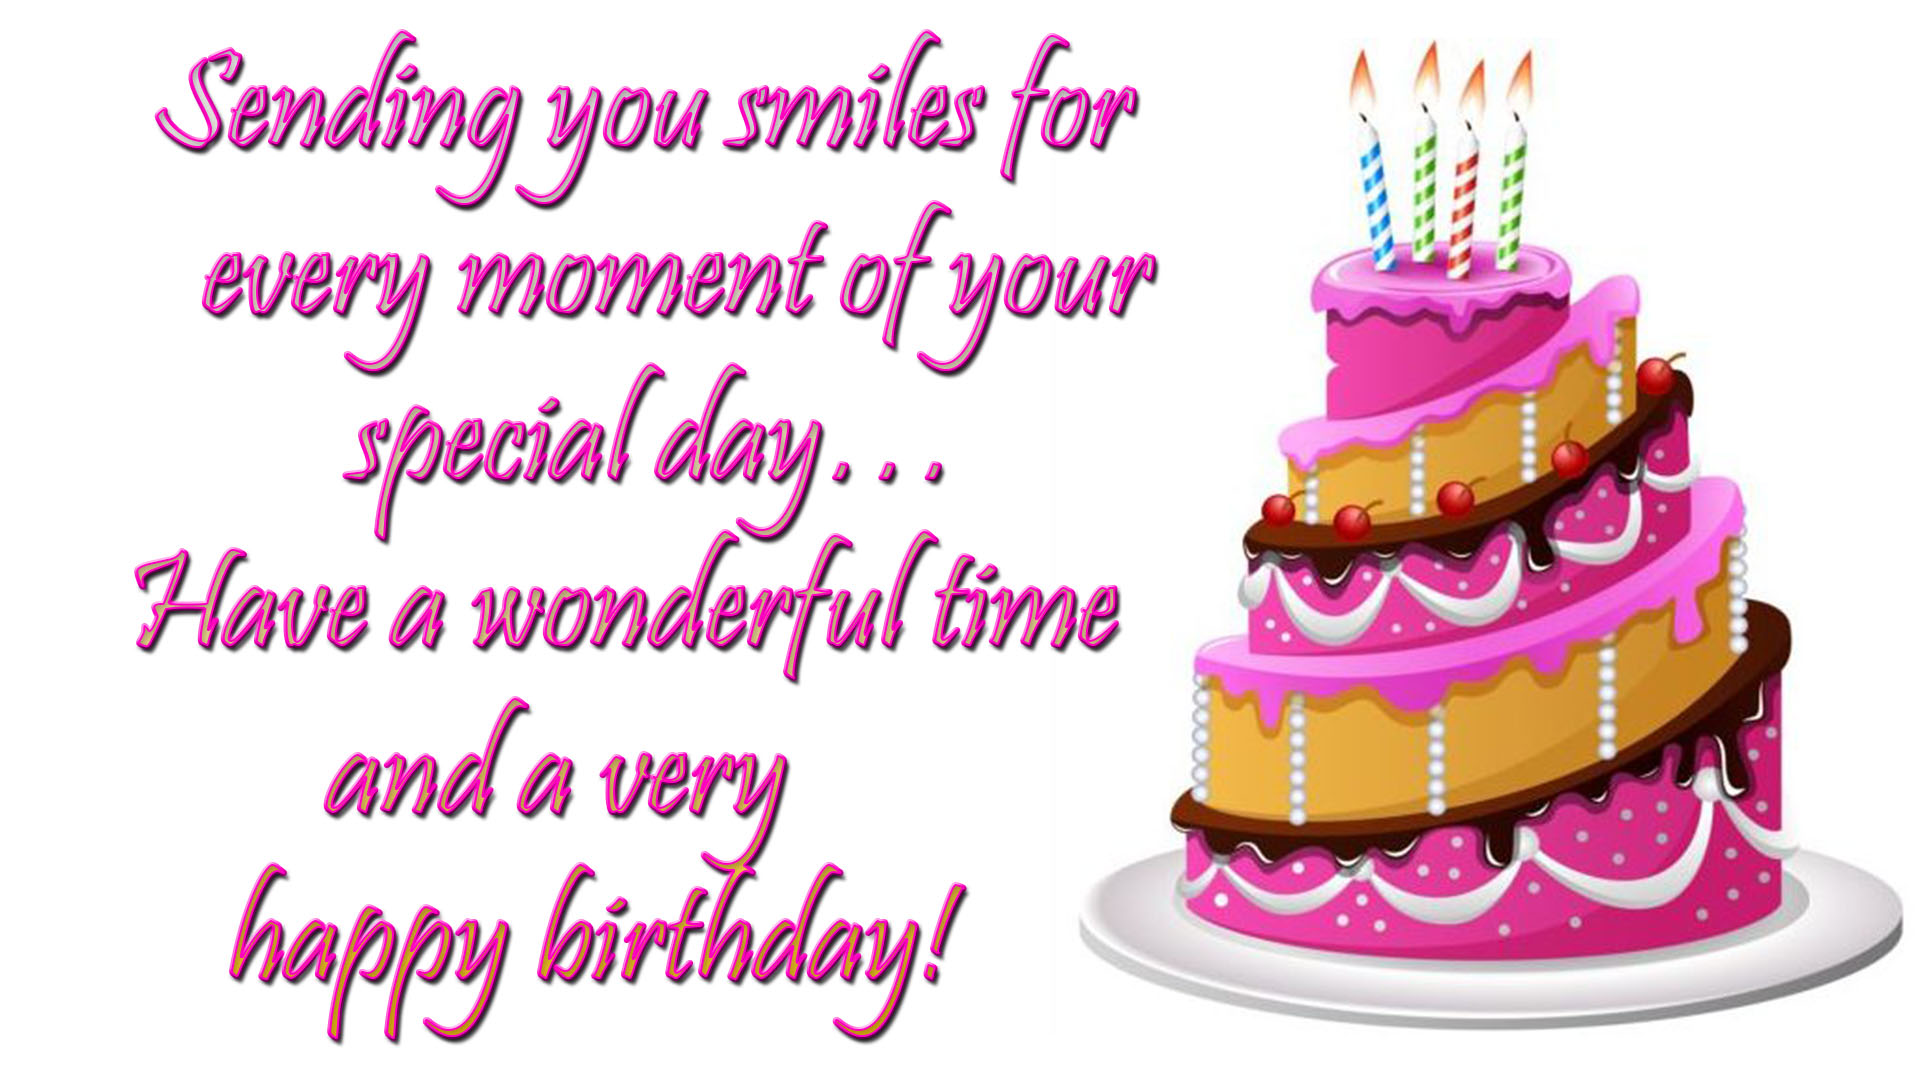 Birthday Wishes Pics, Images & Wallpapers | Happy Birthday Greetings